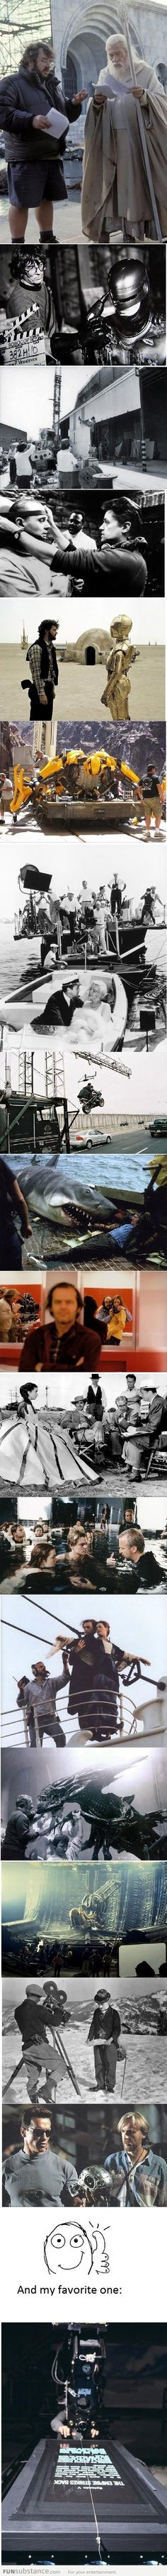 Epic 'Behind the scenes' photos.